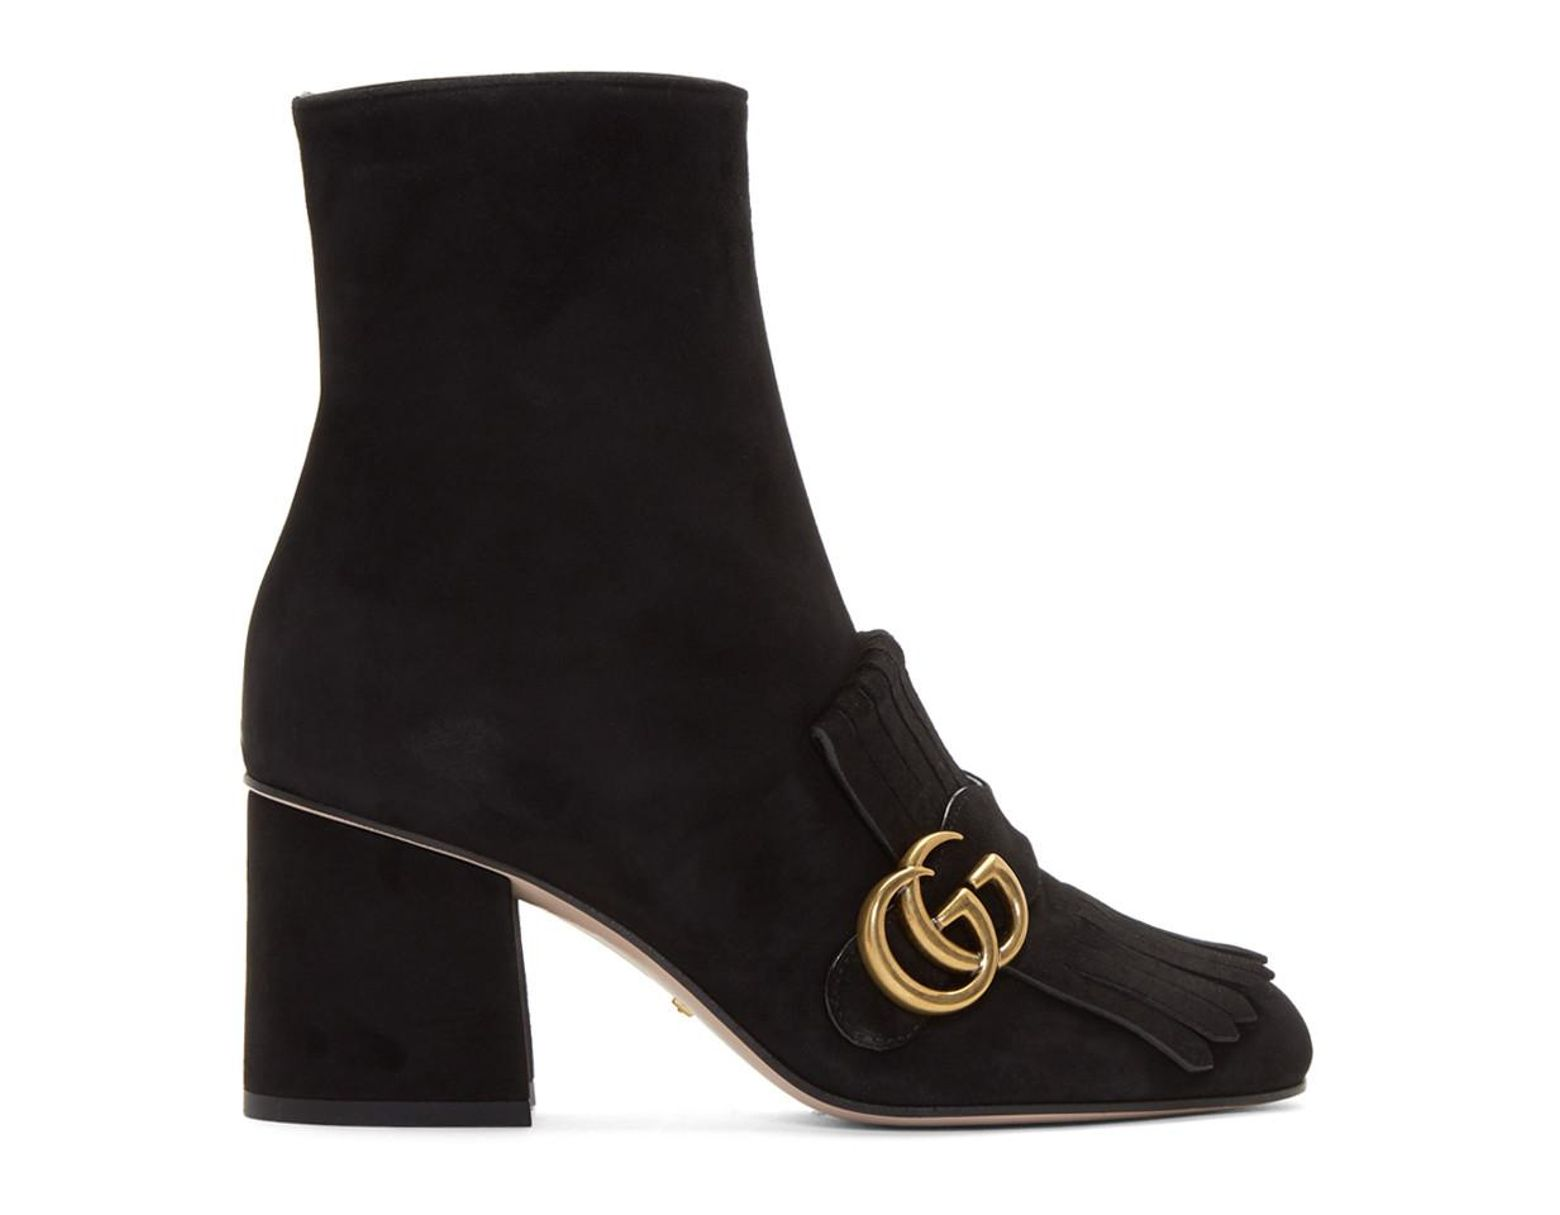 5834c2baa Gucci Black Suede GG Marmont Boots in Black - Lyst